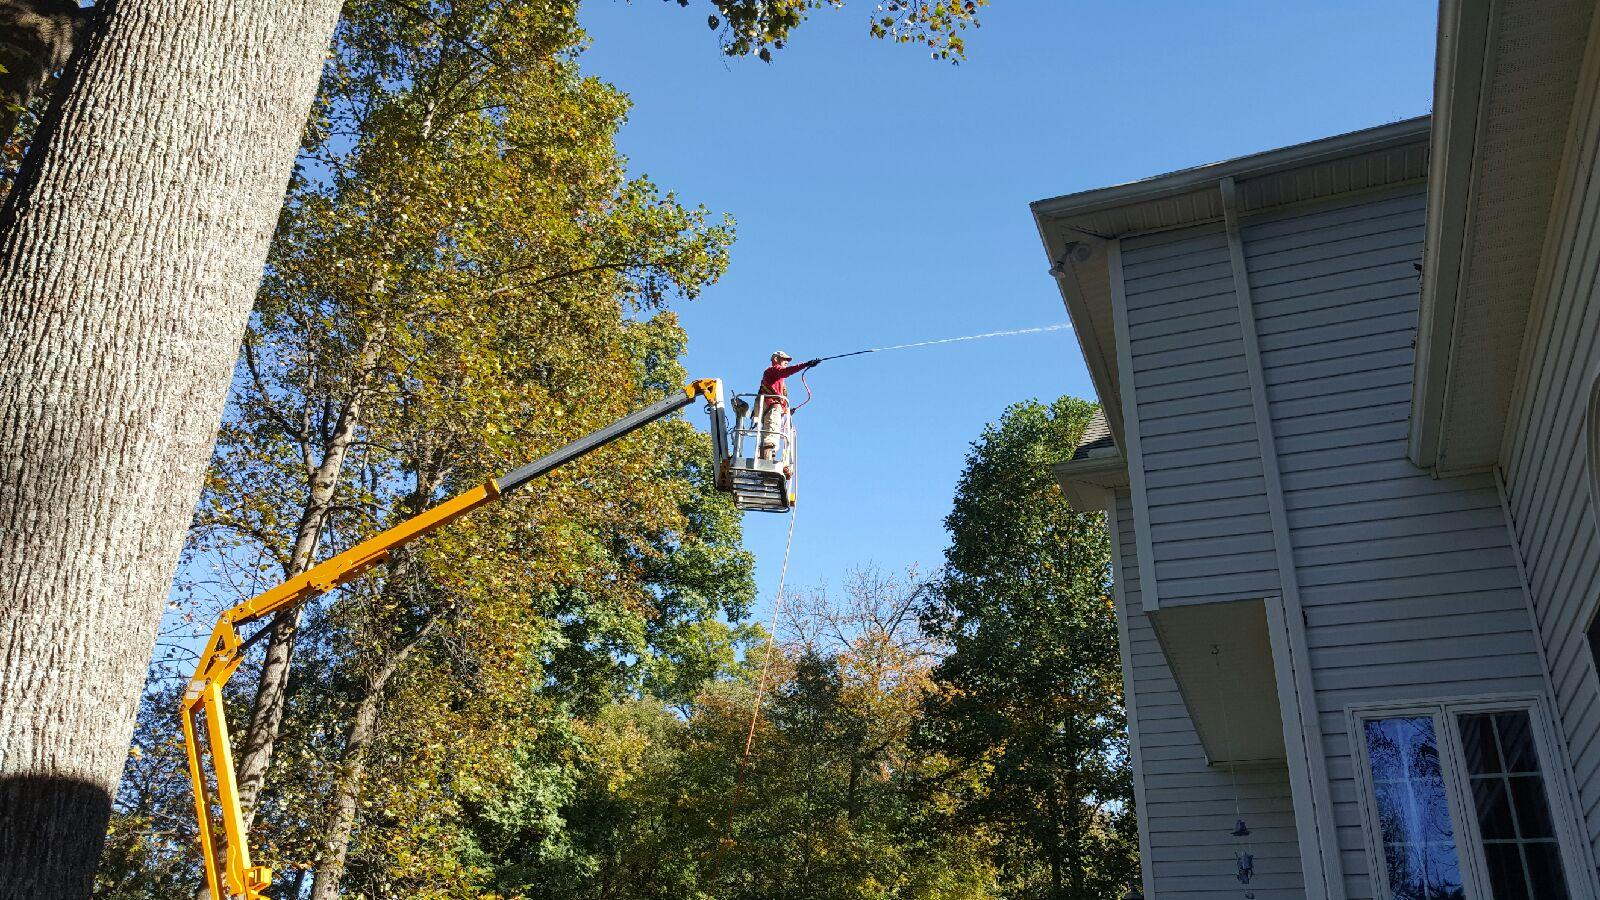 Boom Lift | Pressure Washing Service in Martinsburg WV